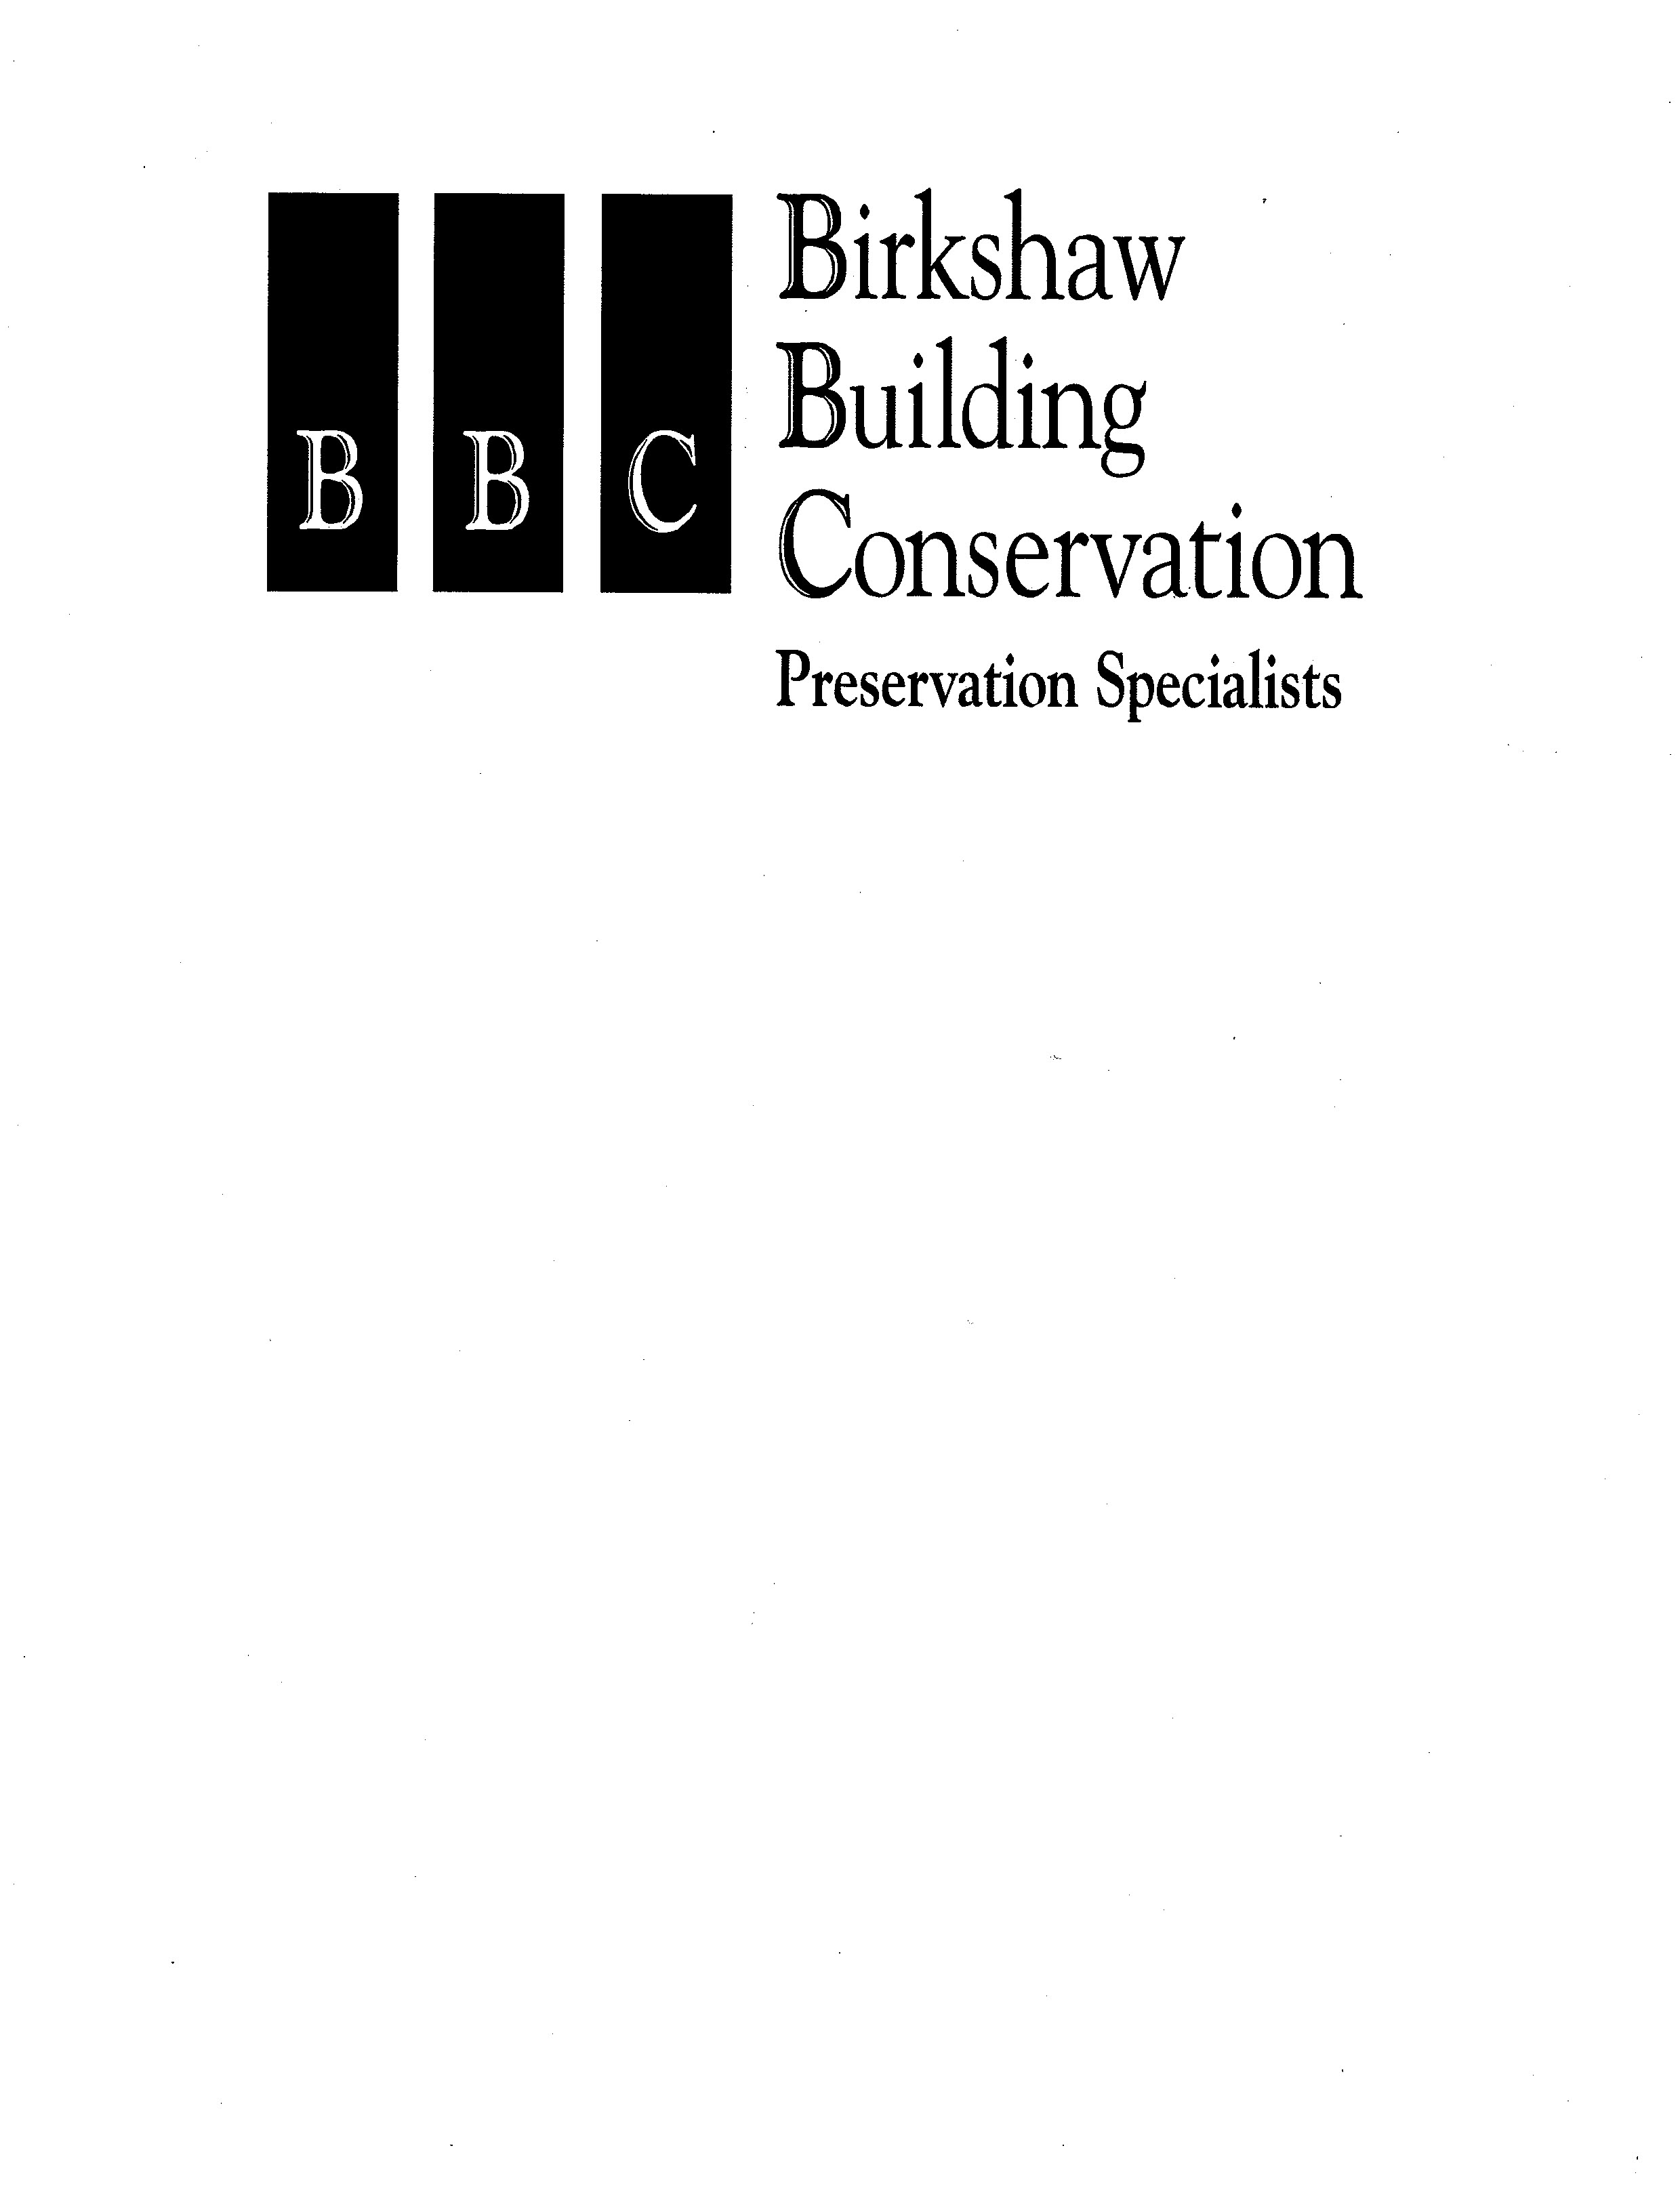 Birkshaw Building Conservation Business Logo